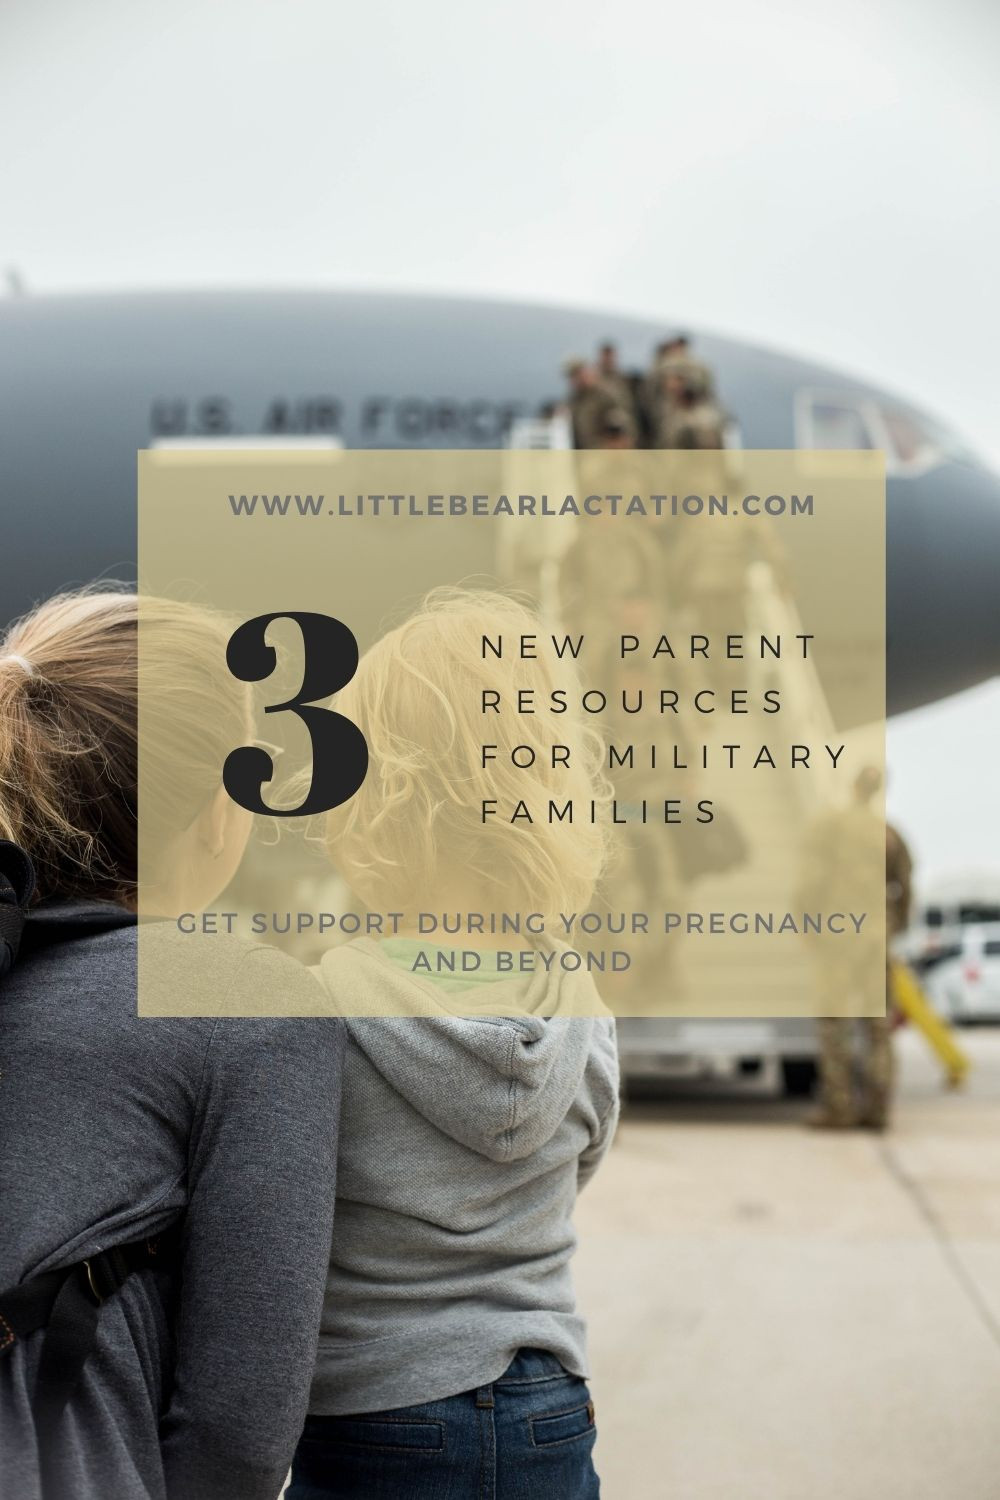 Image of military aircraft and camo clad airmen coming home from deployment while family waits on tarmac text overlay states three new parent resources for military families get support during your pregnancy and beyond military spouse military family